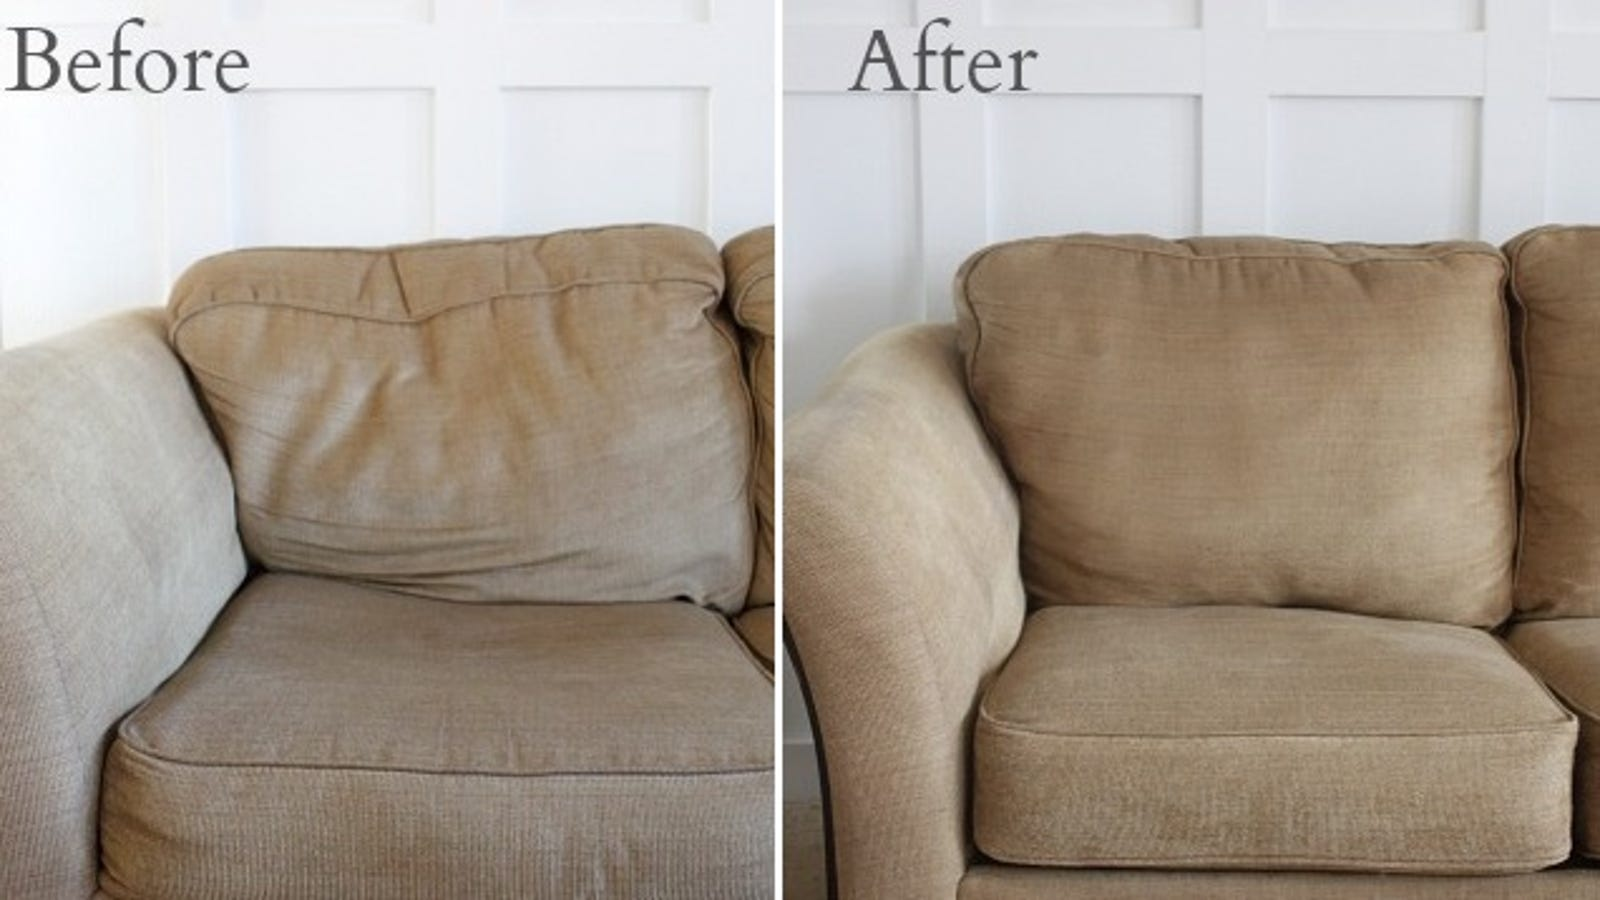 Revitalize Saggy Couch Cushions With Poly Fil And Quilt Batting